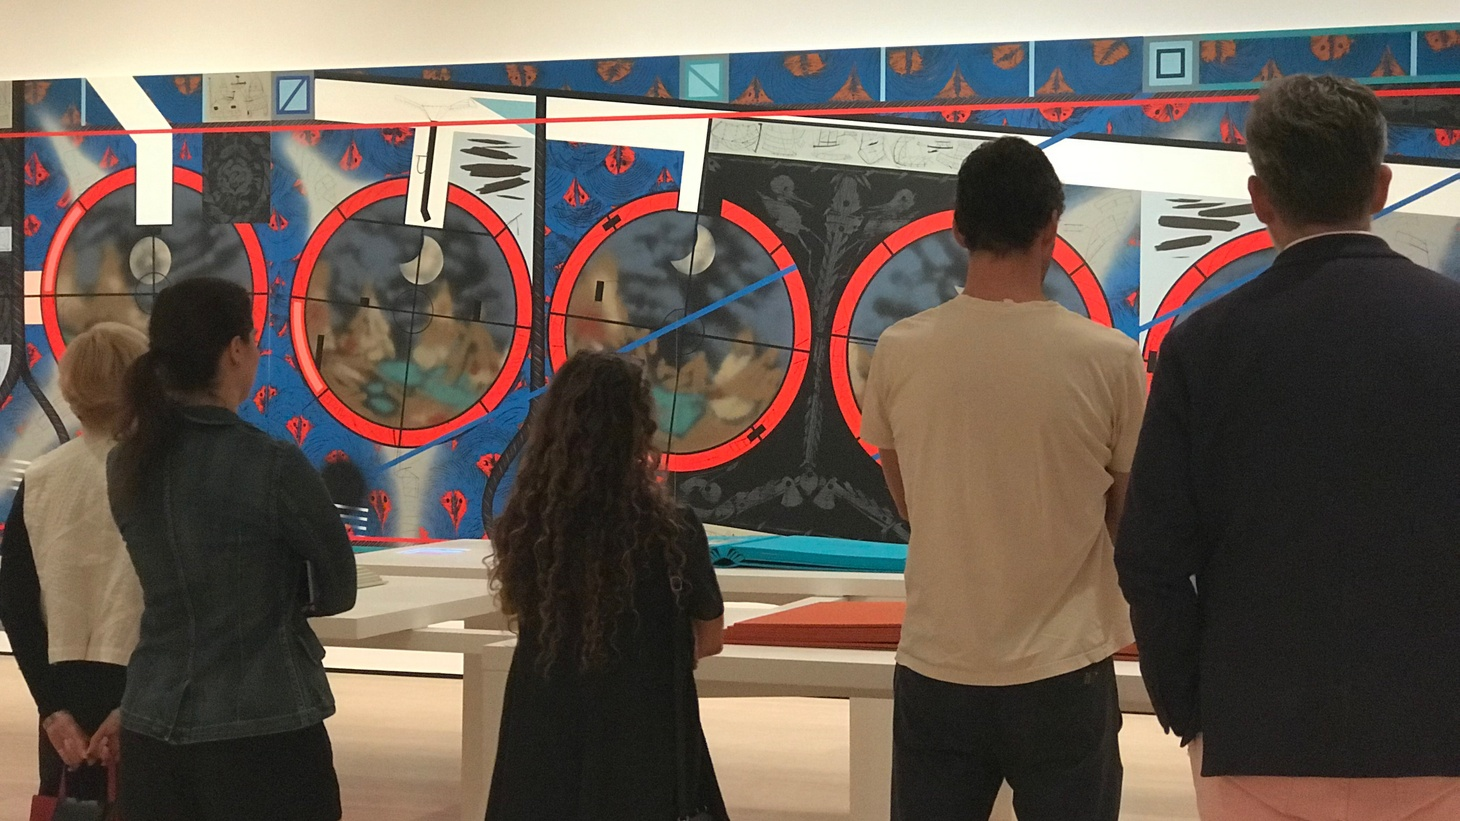 """Attendees at the preview of Lari Pittman's """"Declaration of Independence"""" at The Hammer museum. Photo by Frances Anderton."""